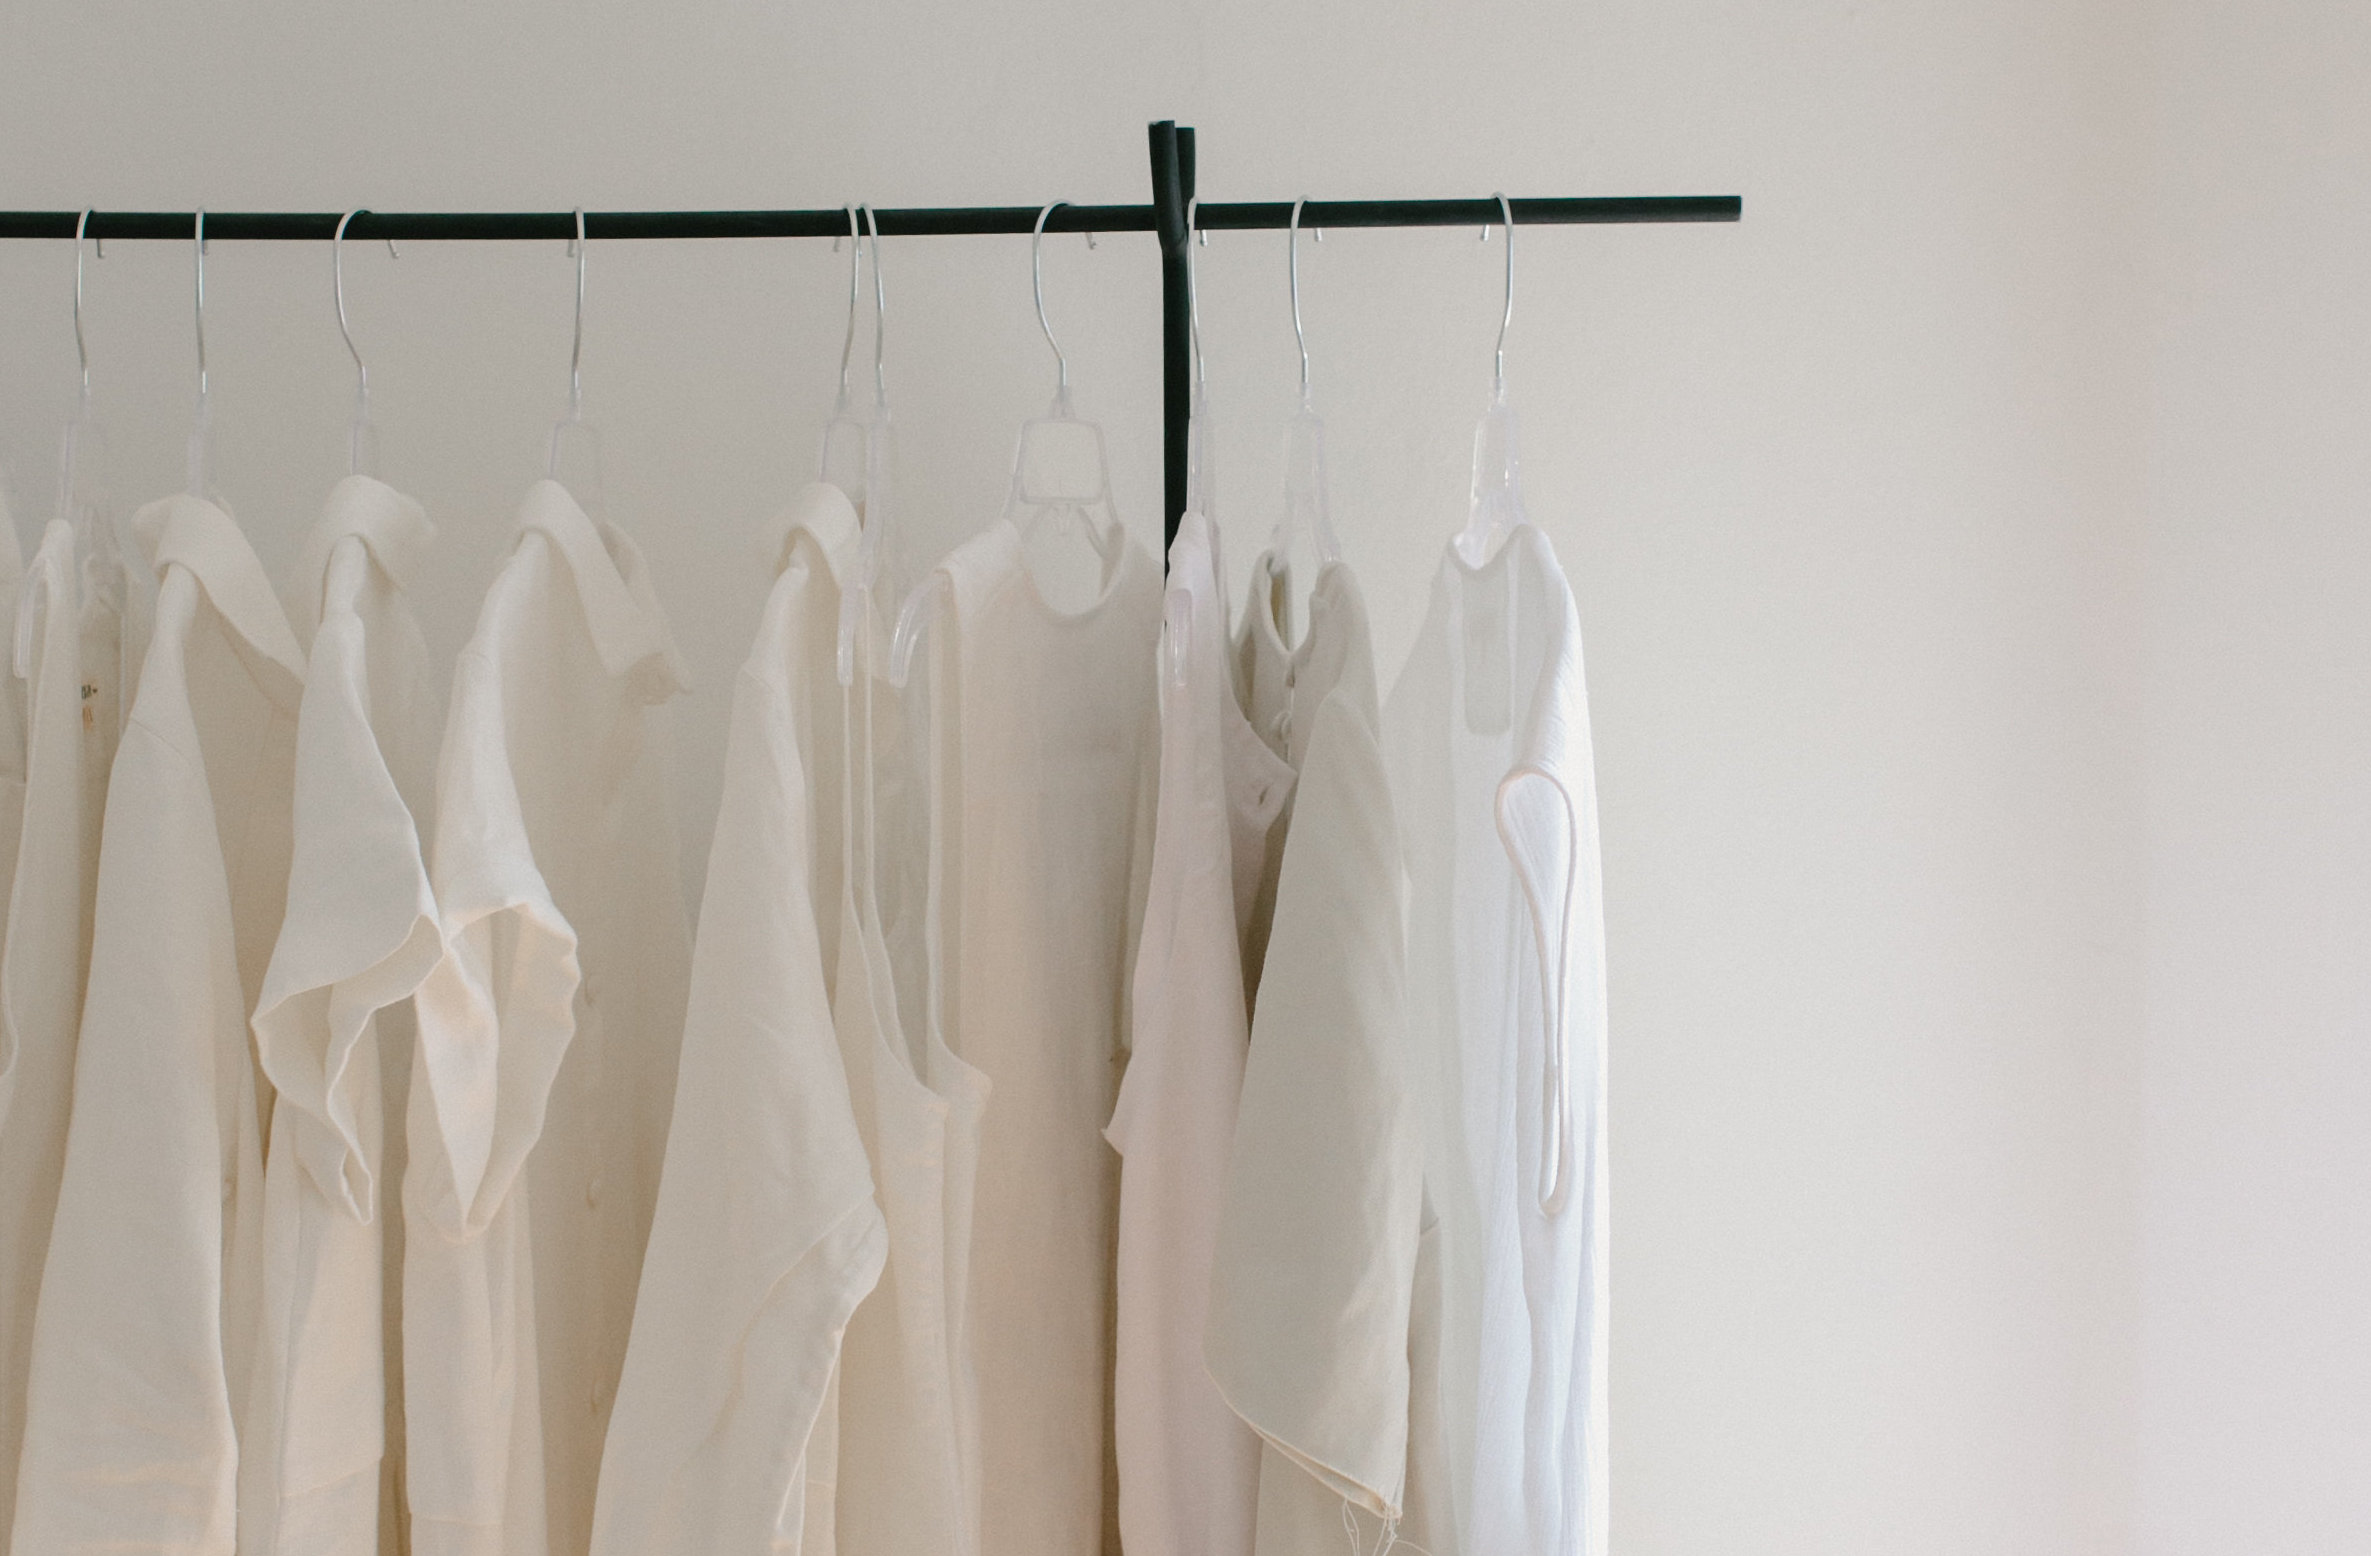 Insiders seek out the Zii Ropa showroom for minimalist shift dresses and kimonos in desert hues.